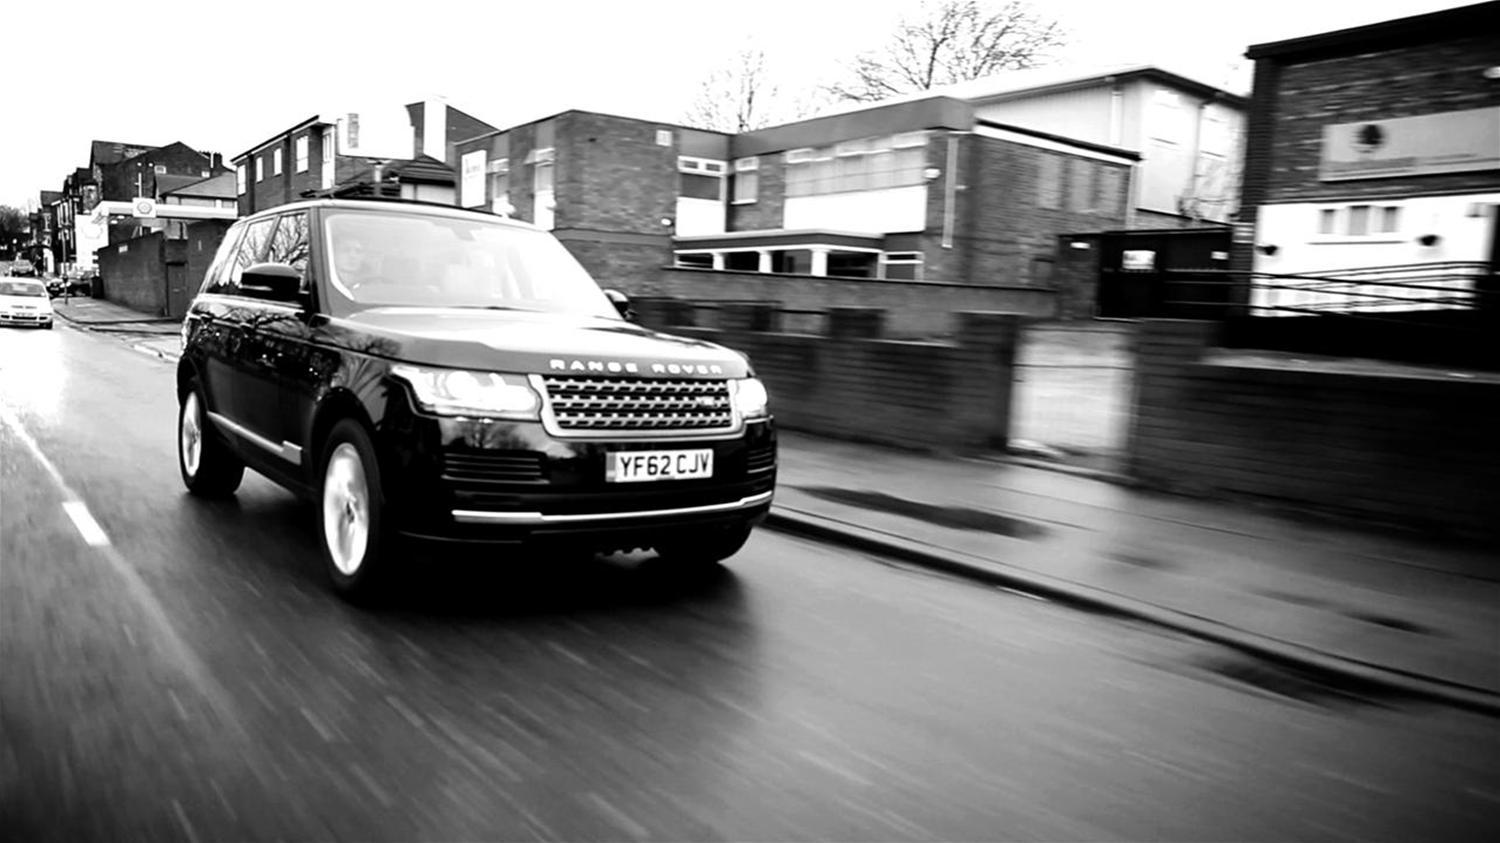 New 2013 Range Rover Prices & Equipment Guide